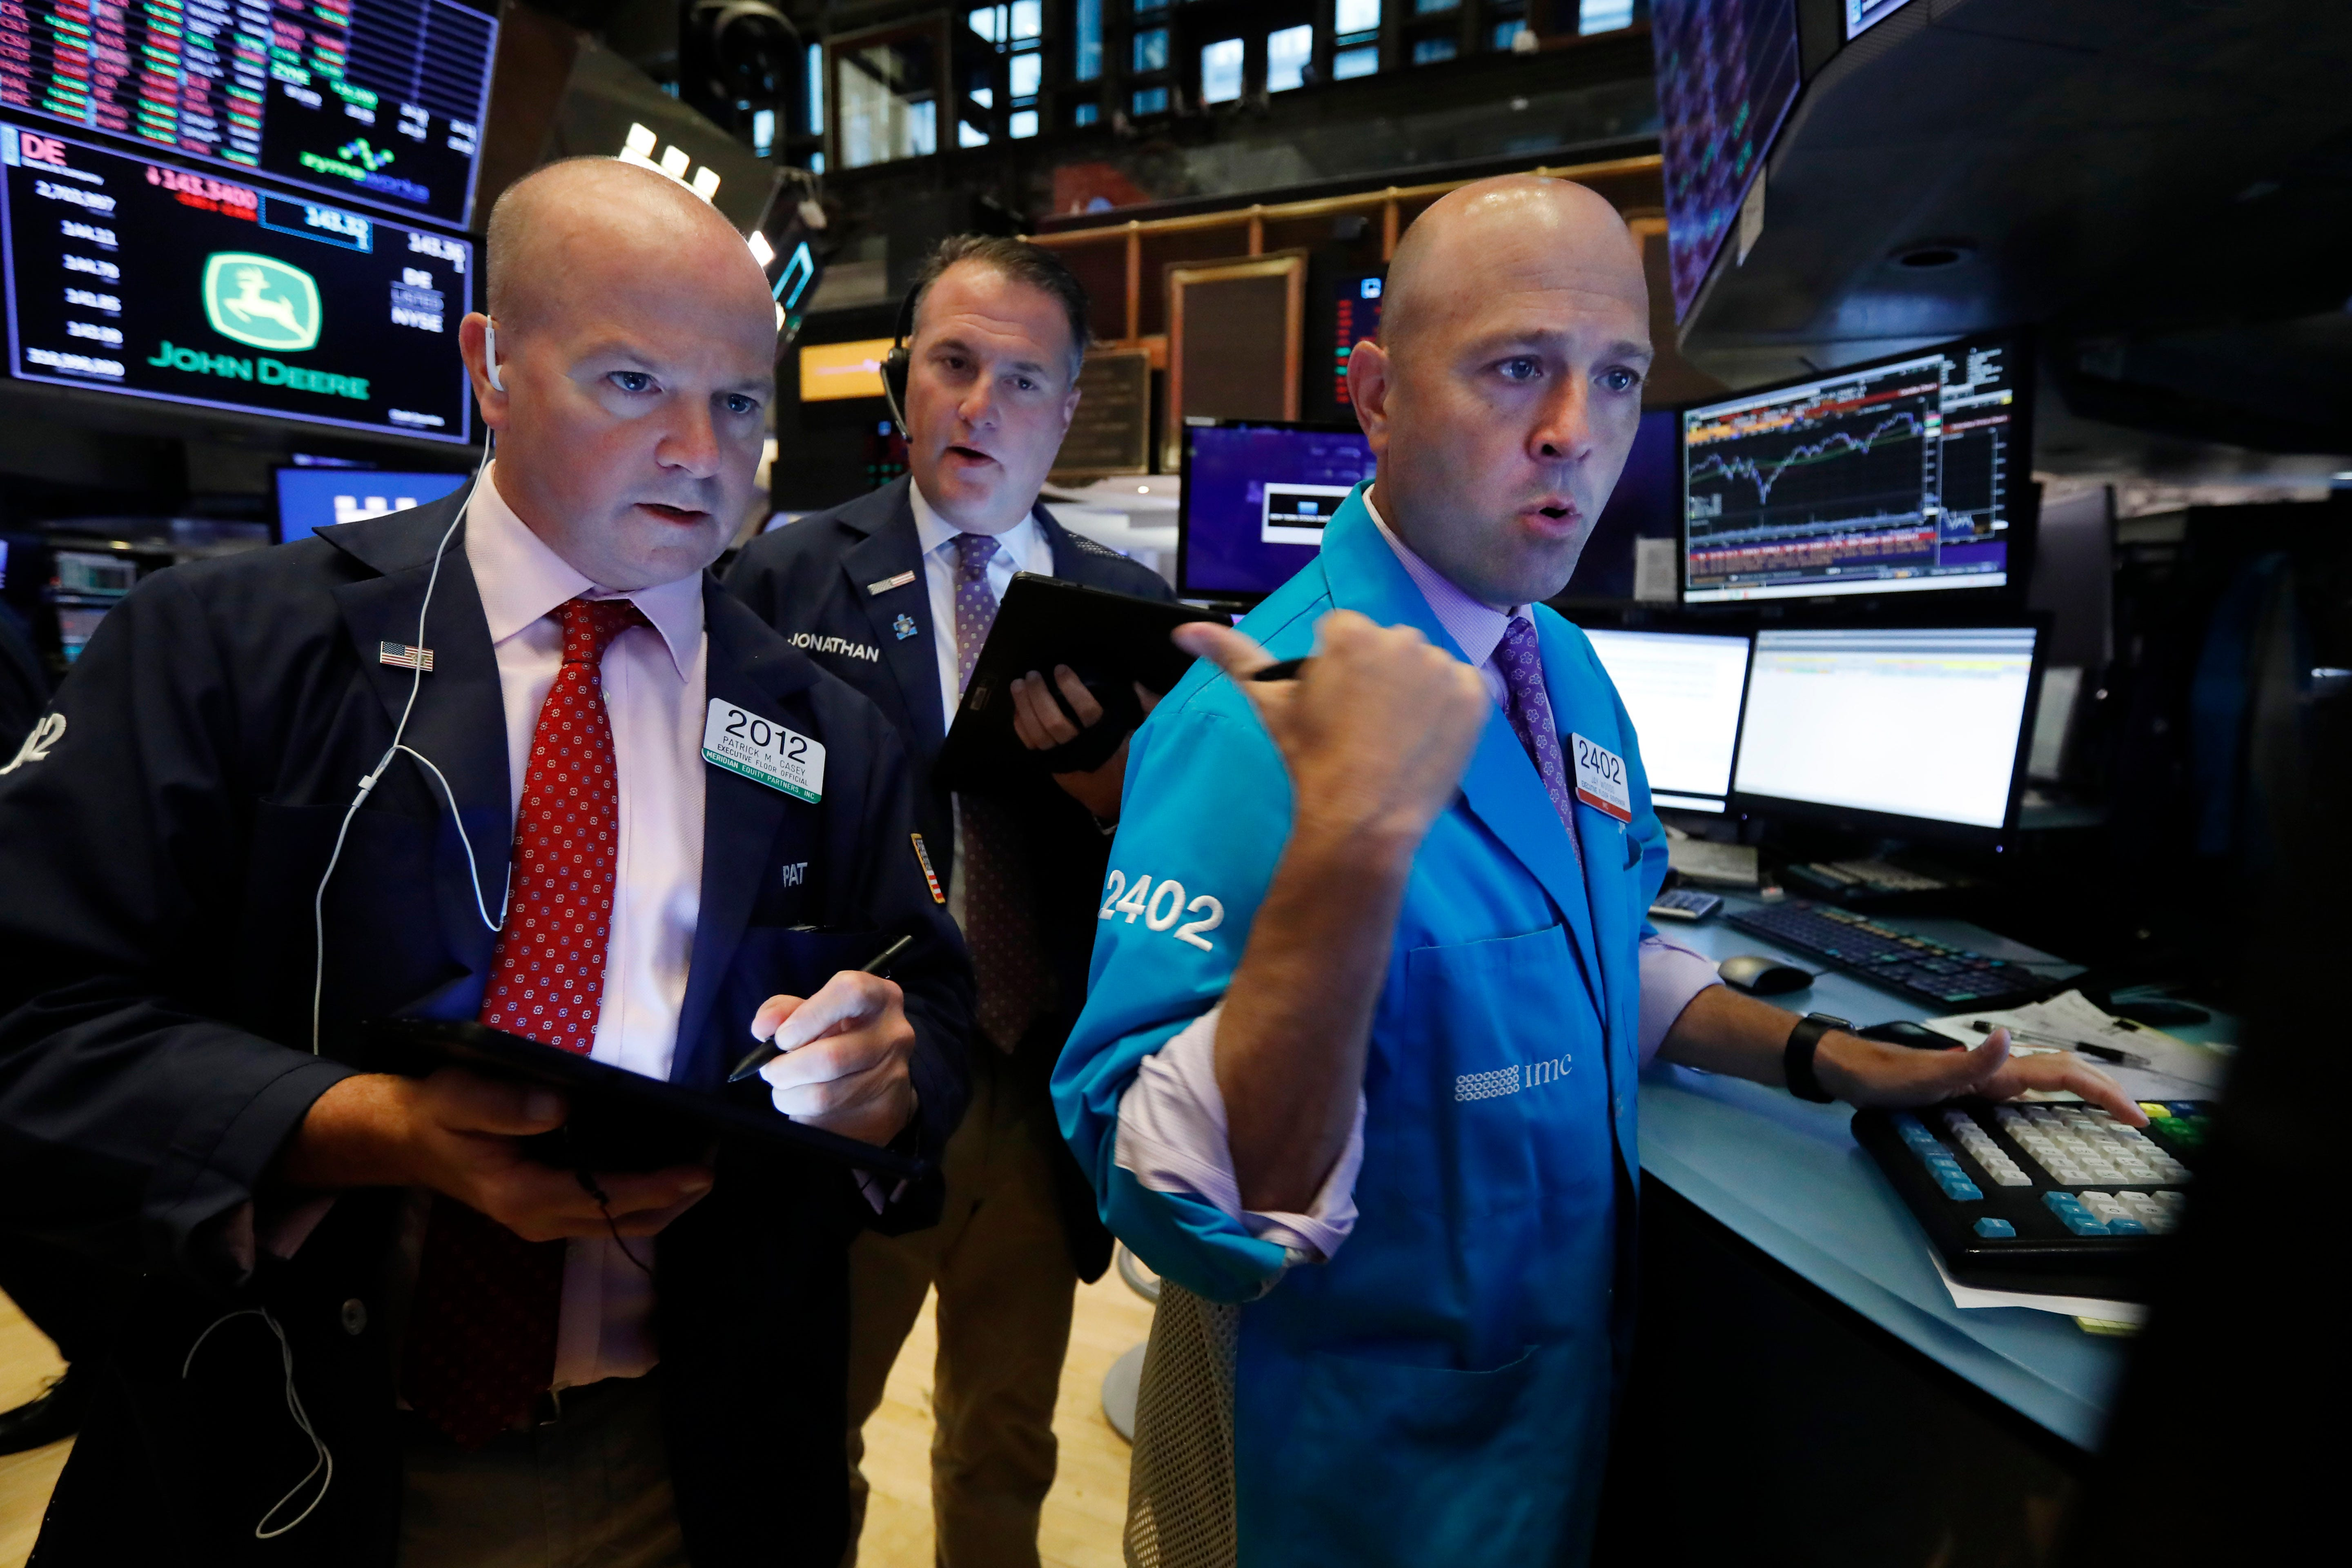 Market rebounds from August plunge on trade hopes, nears record